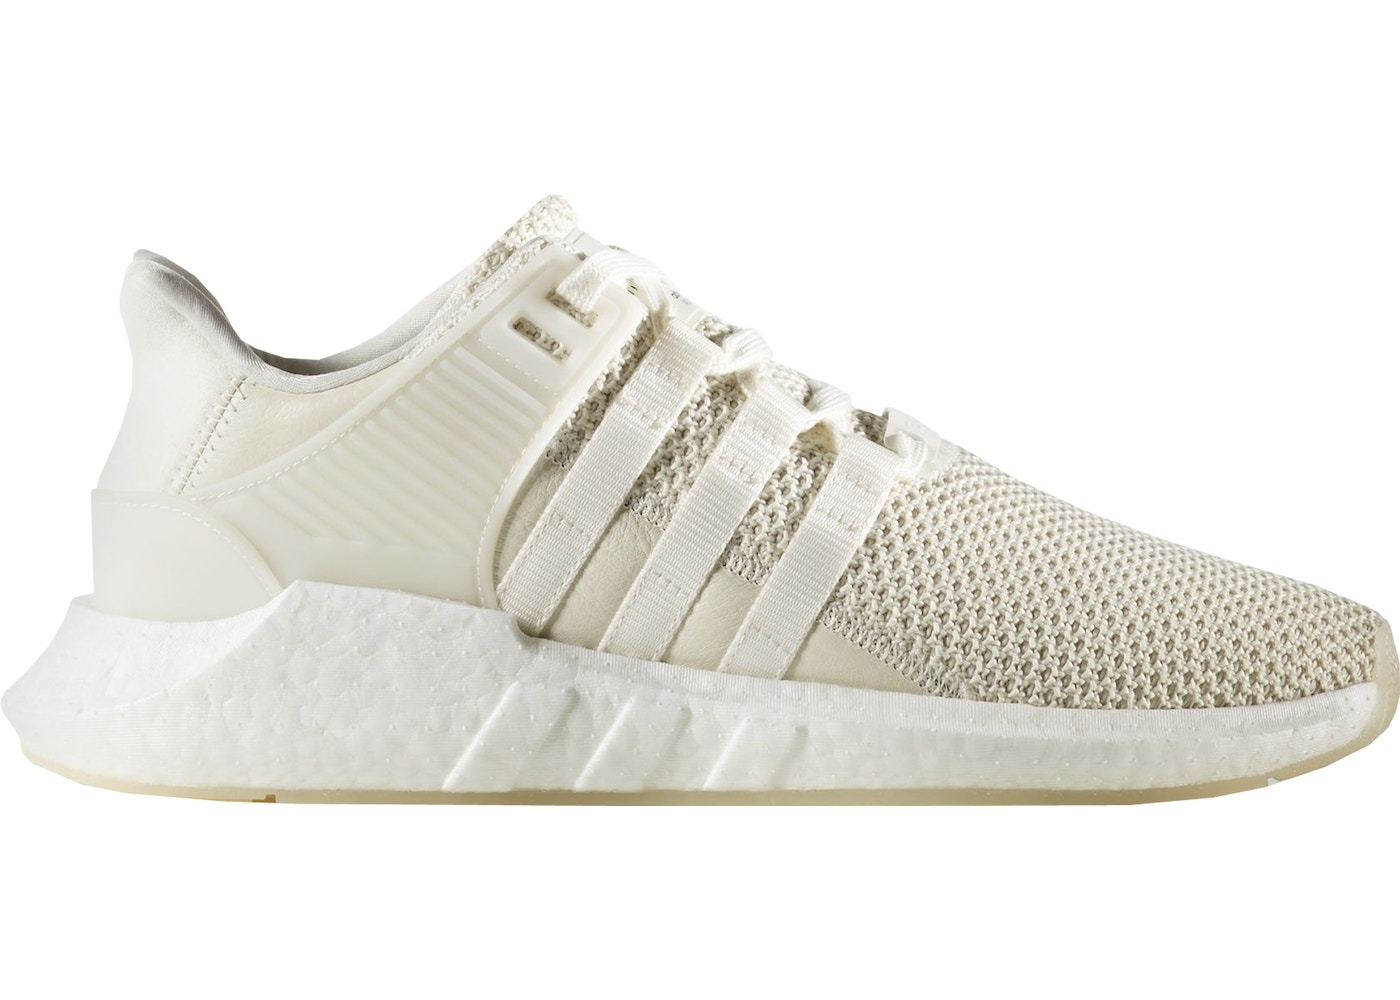 Vendita adidas EQT Support 93/17 Cream